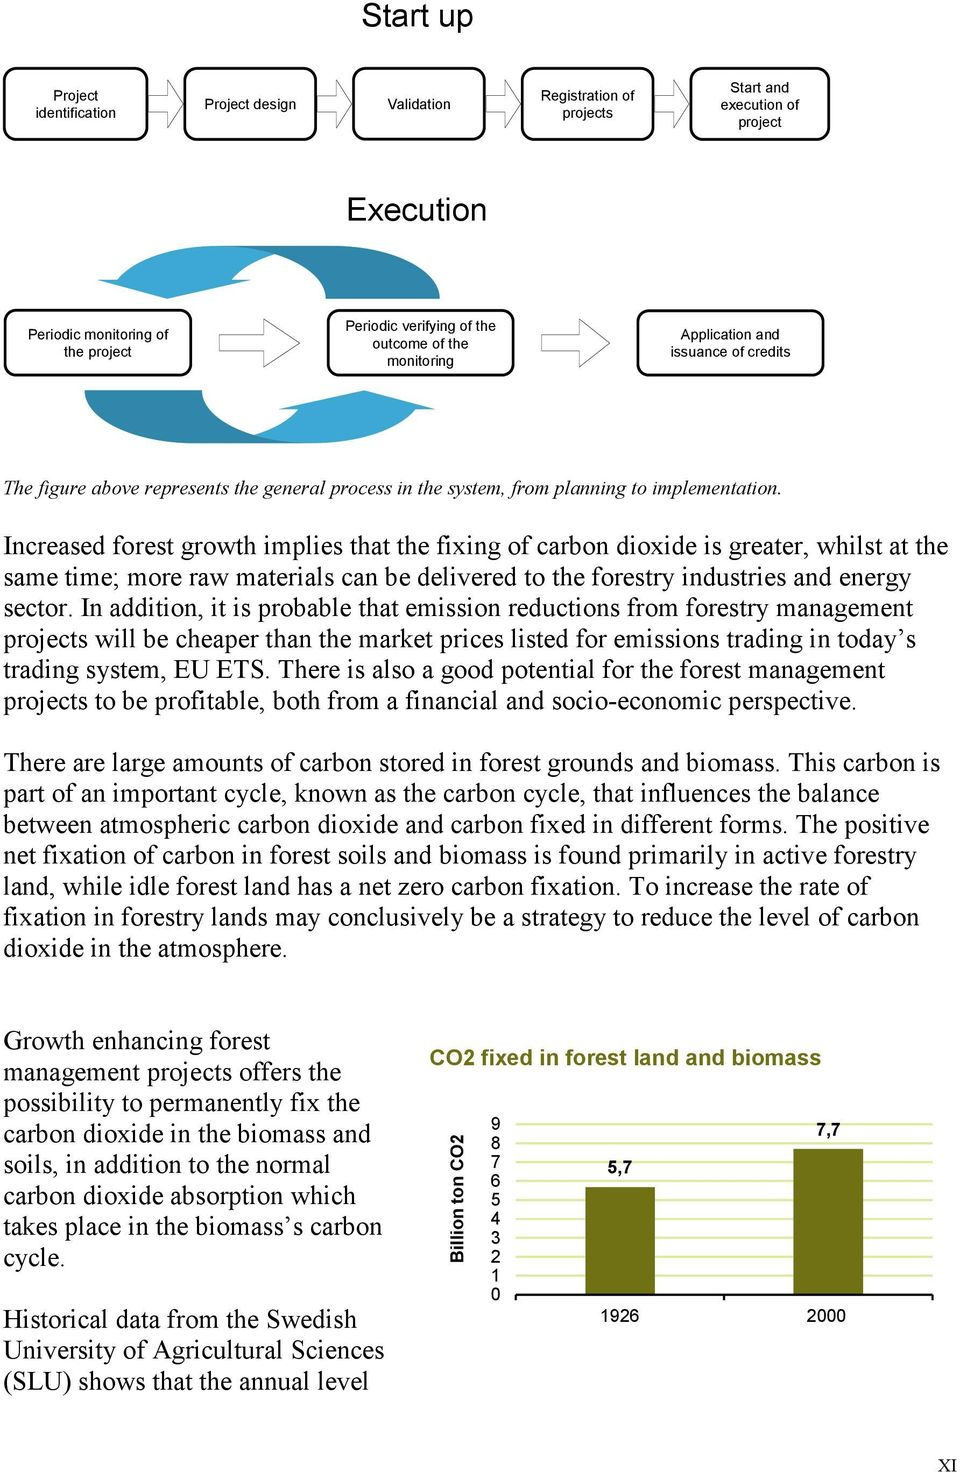 Increased forest growth implies that the fixing of carbon dioxide is greater, whilst at the same time; more raw materials can be delivered to the forestry industries and energy sector.